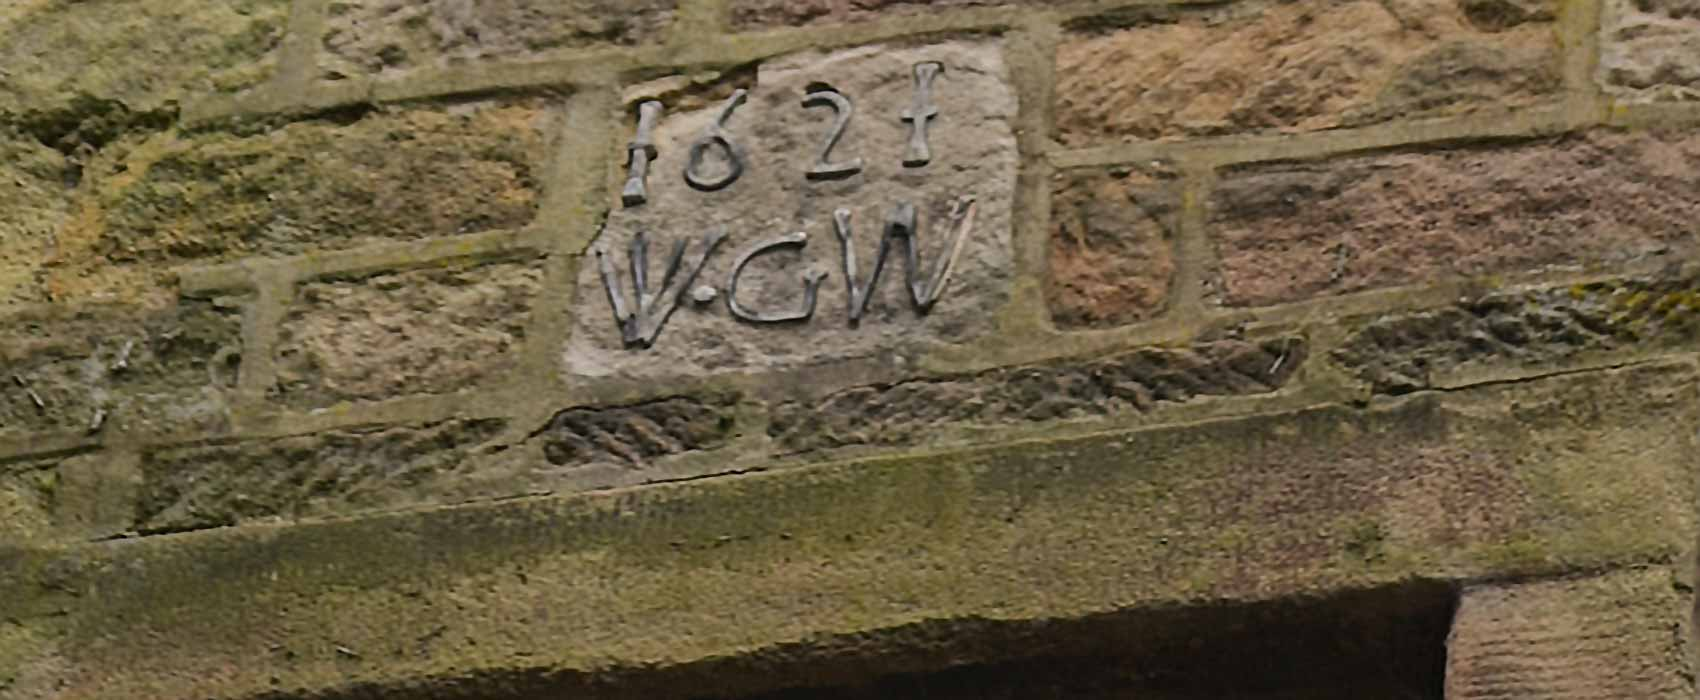 Date-oldest-building-Knowleston-Place